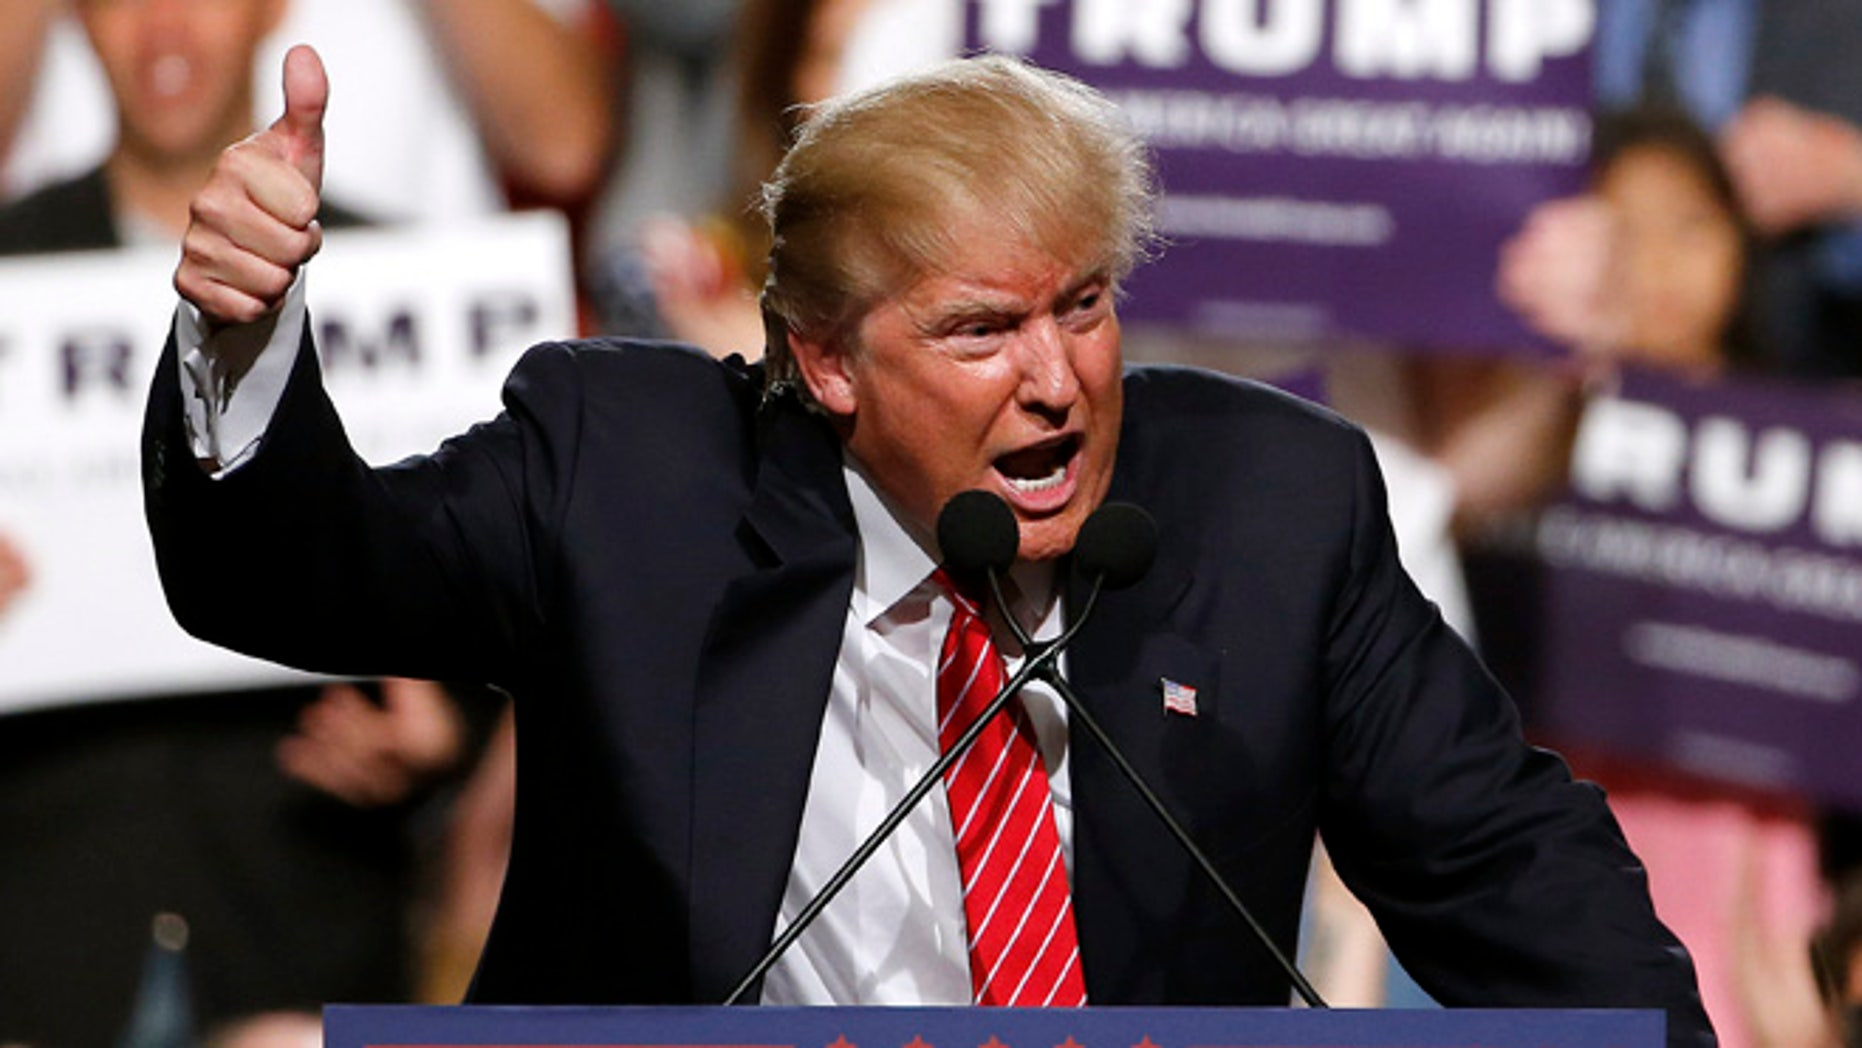 Republican presidential candidate Donald Trump finishes up speaking before a crowd of 3,500 Saturday, July 11, 2015, in Phoenix. (AP Photo/Ross D. Franklin)